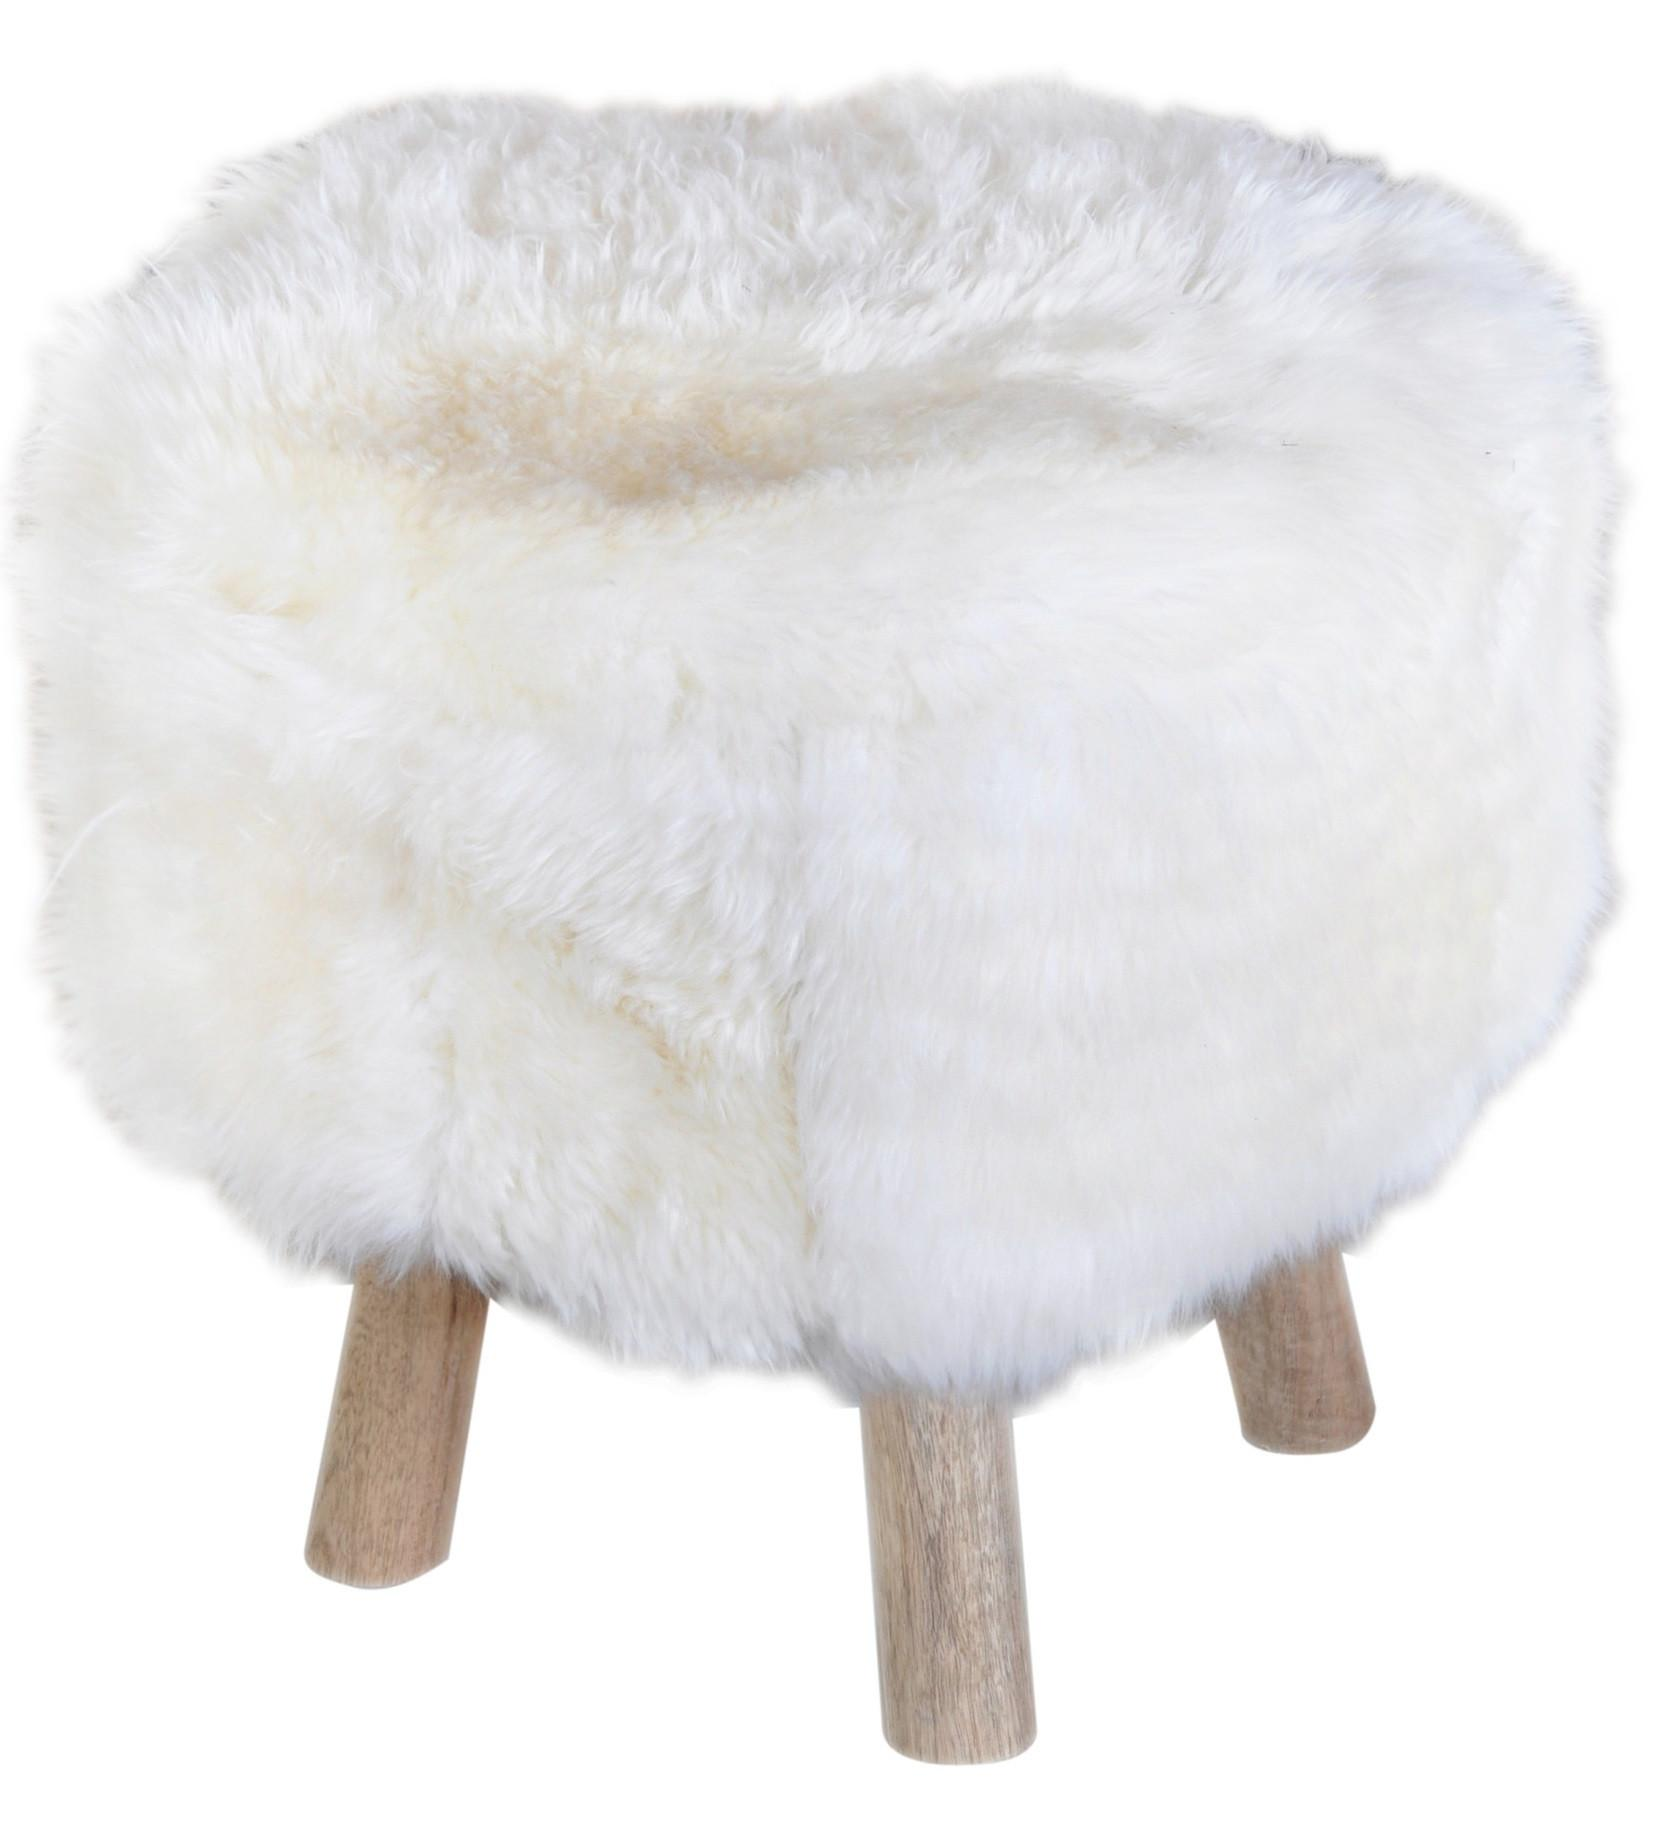 sheep hide covering made in italy luxury winter seat pouf puff